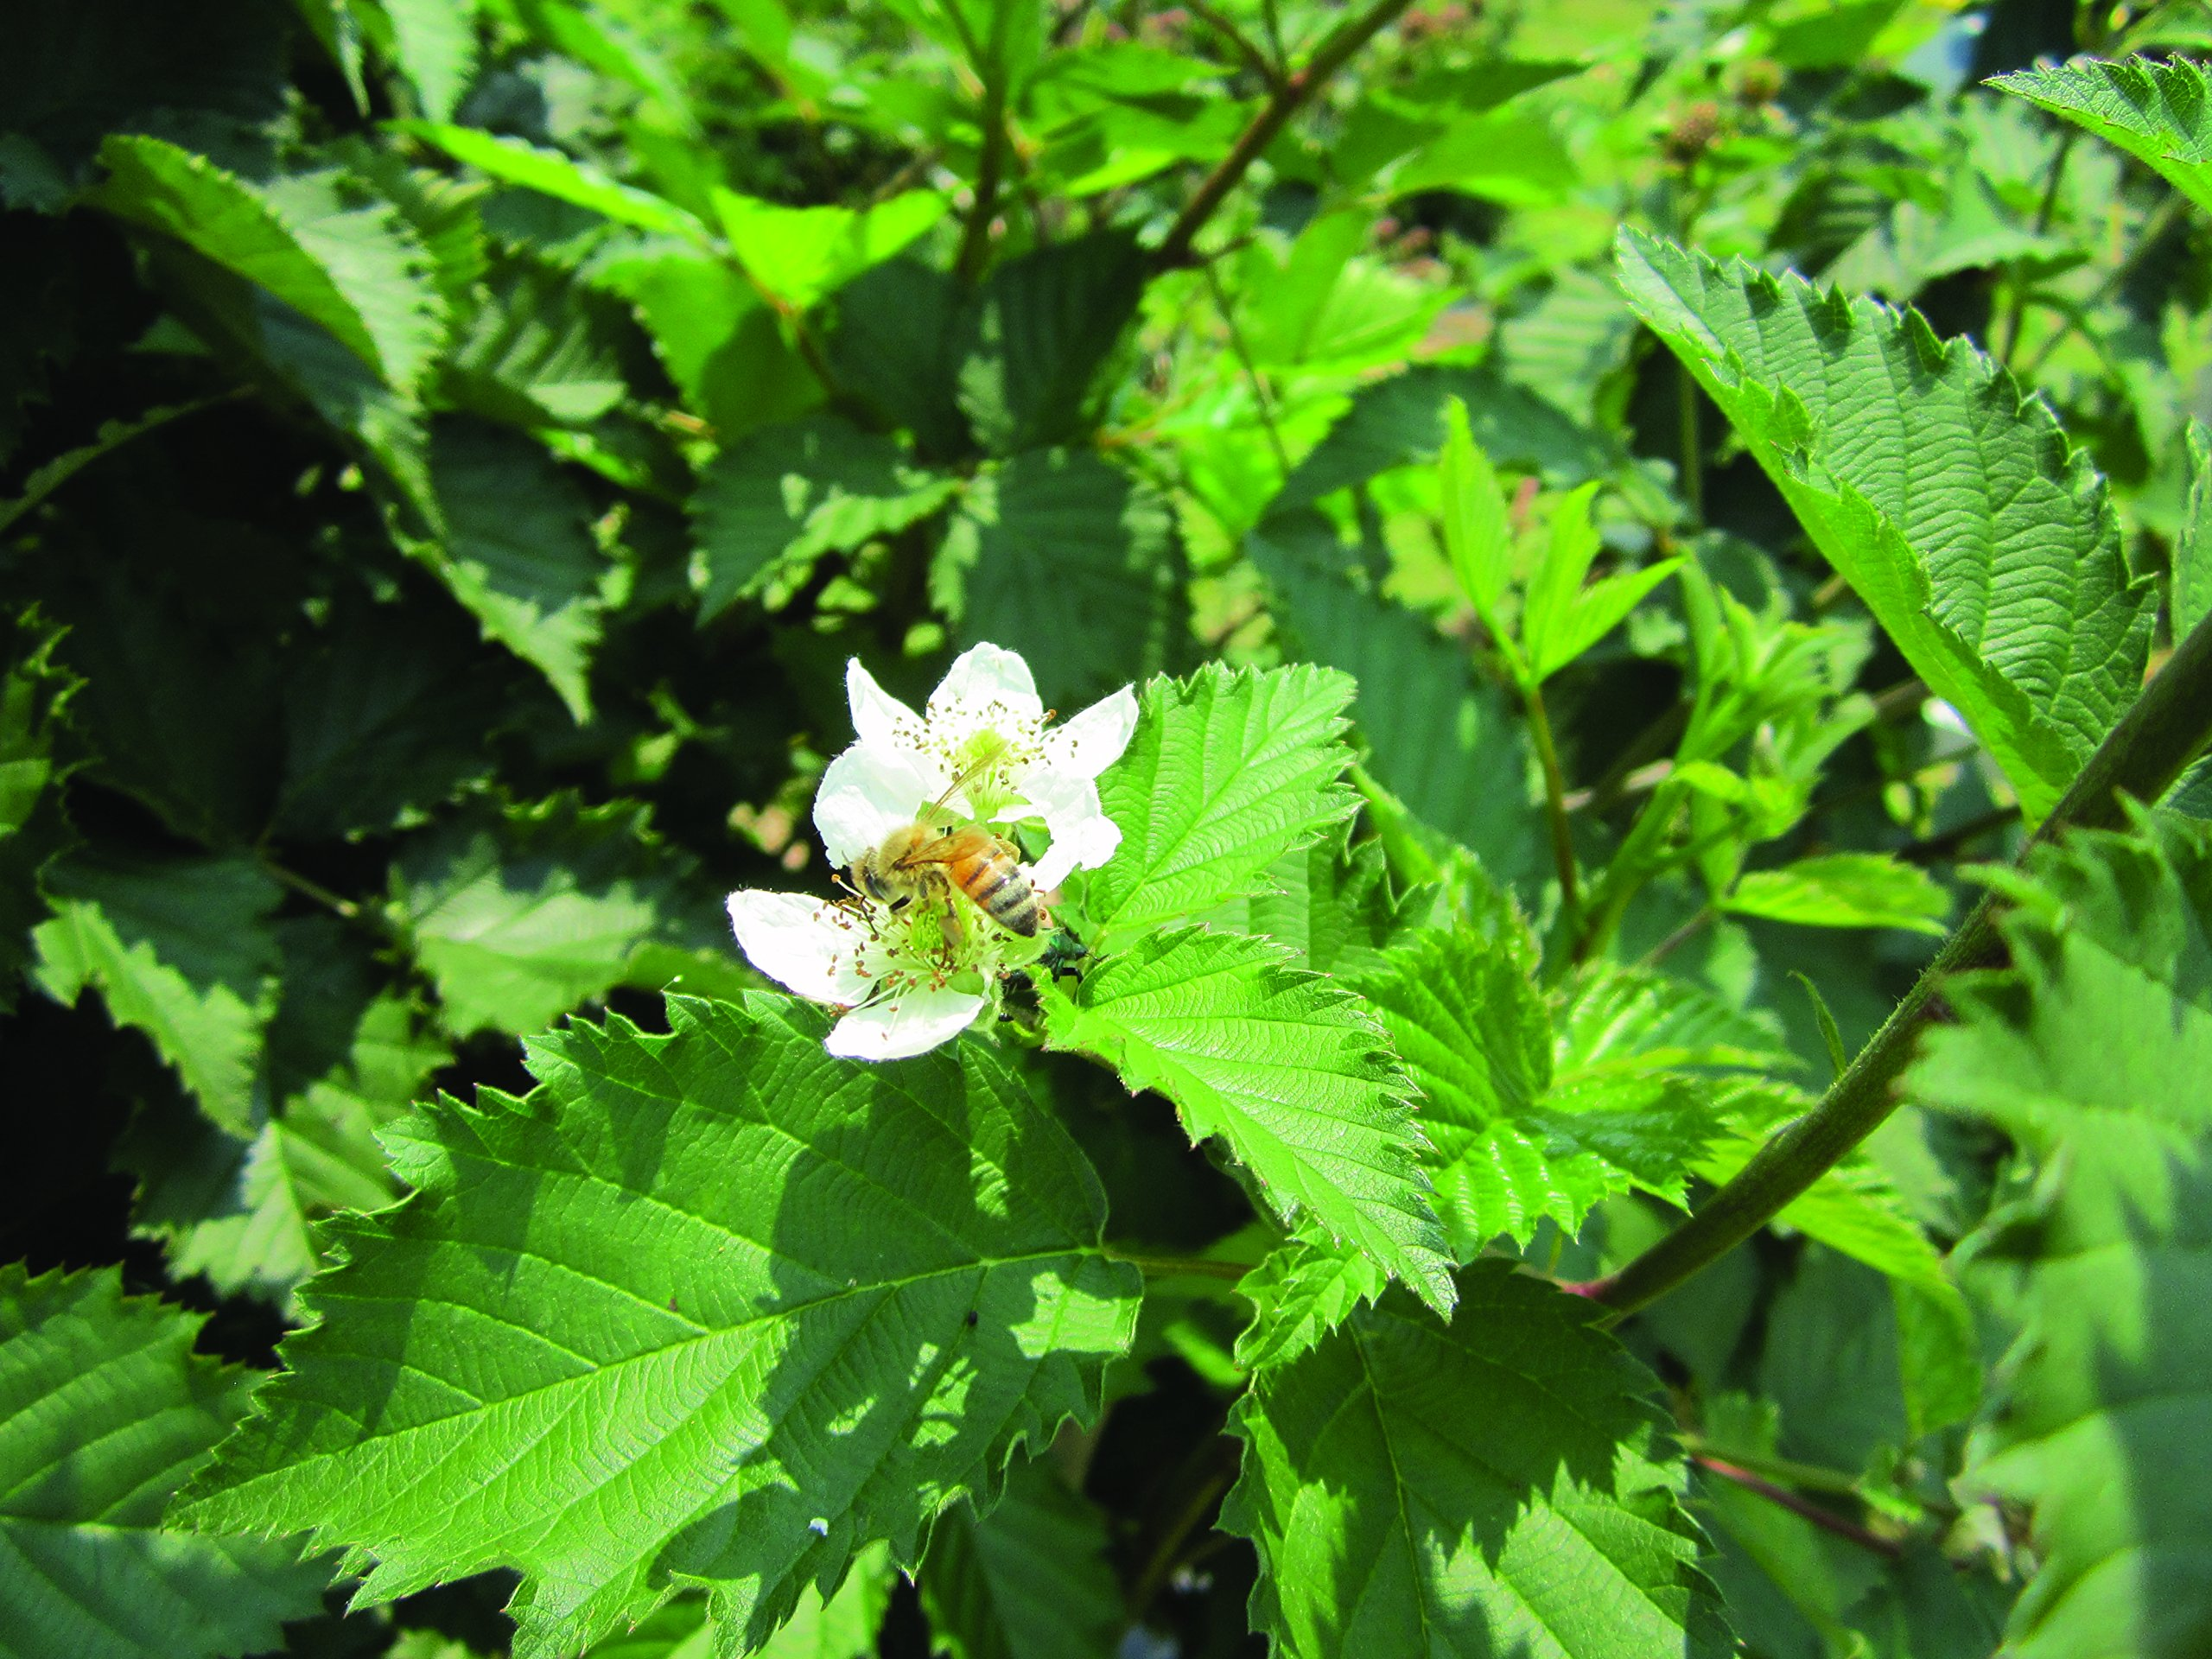 Burpee Thornless Blackberry Prime-Ark 'Freedom' shipped as FIVE BARE ROOT PLANTS by Burpee (Image #2)